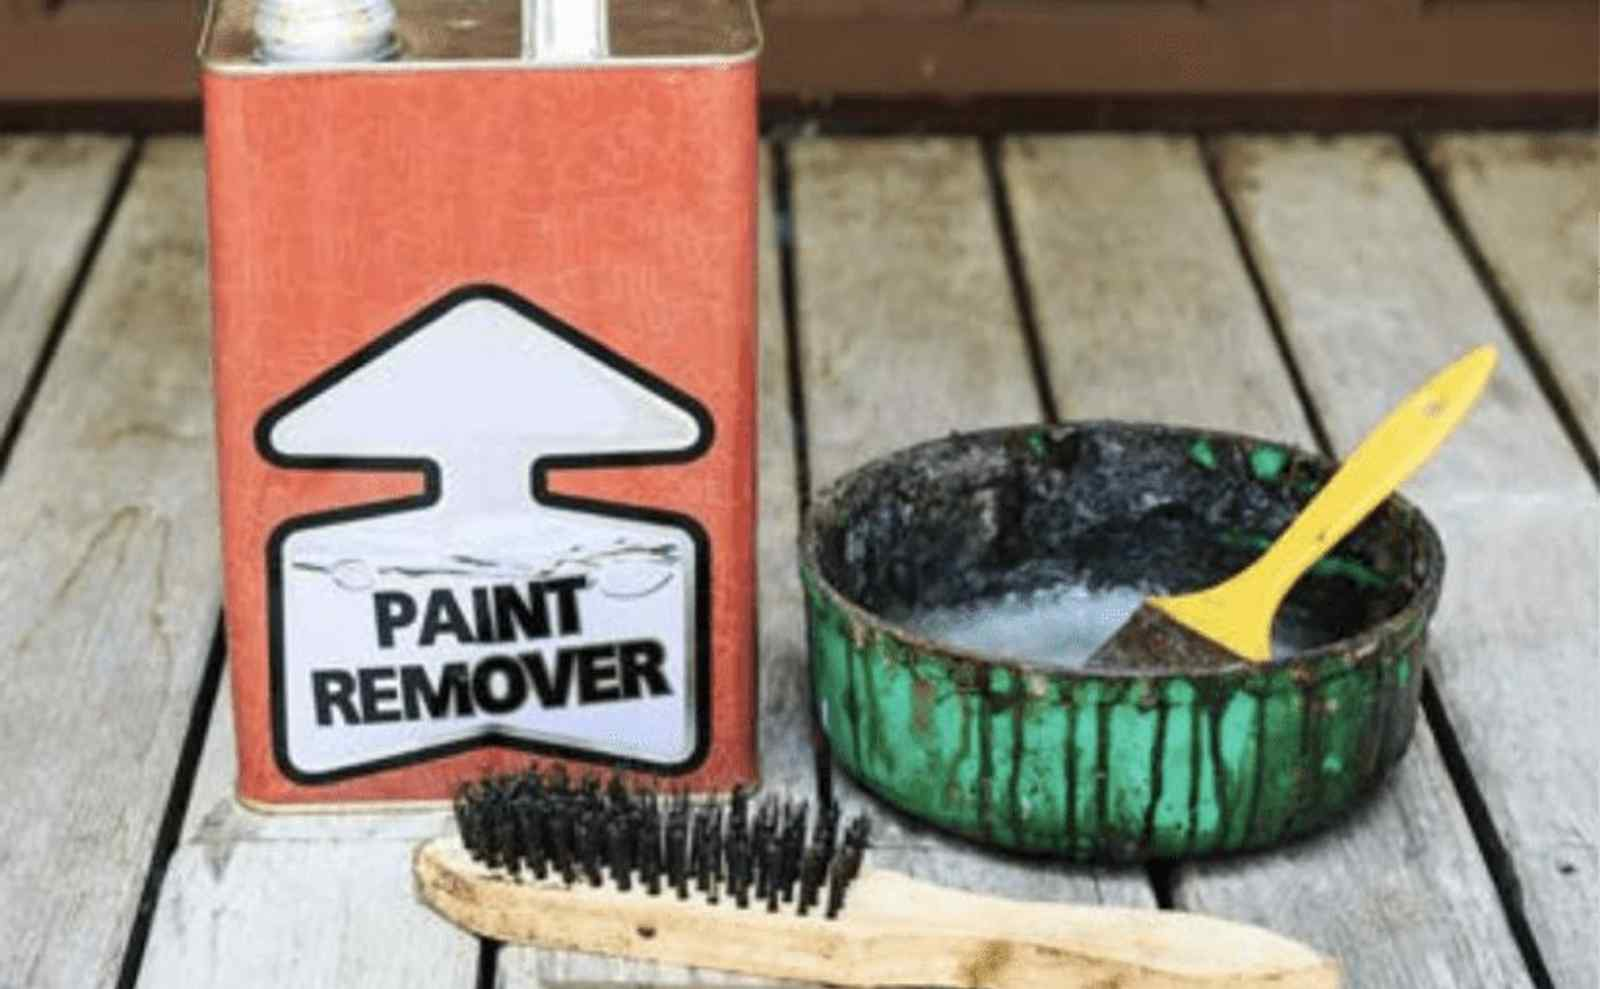 SALE OF PAINT REMOVAL PRODUCTS BANNED BY THE FDA